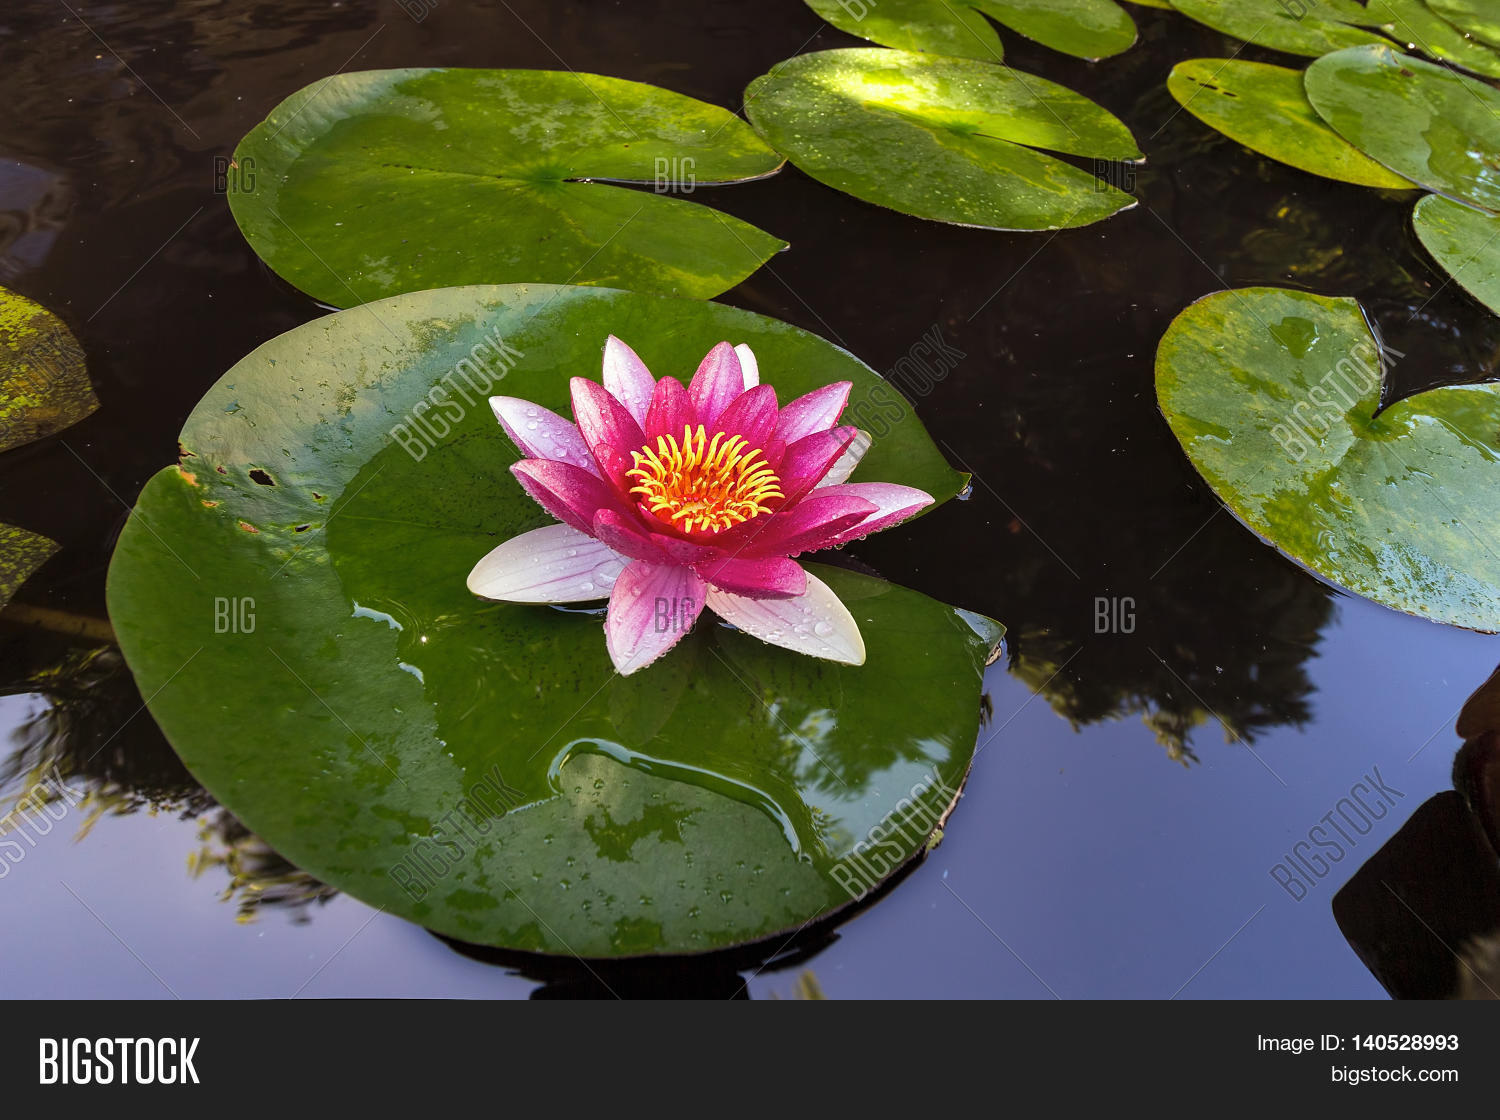 Pink water lily image photo free trial bigstock pink water lily flowers in bloom with lilypad in garden backyard pond izmirmasajfo